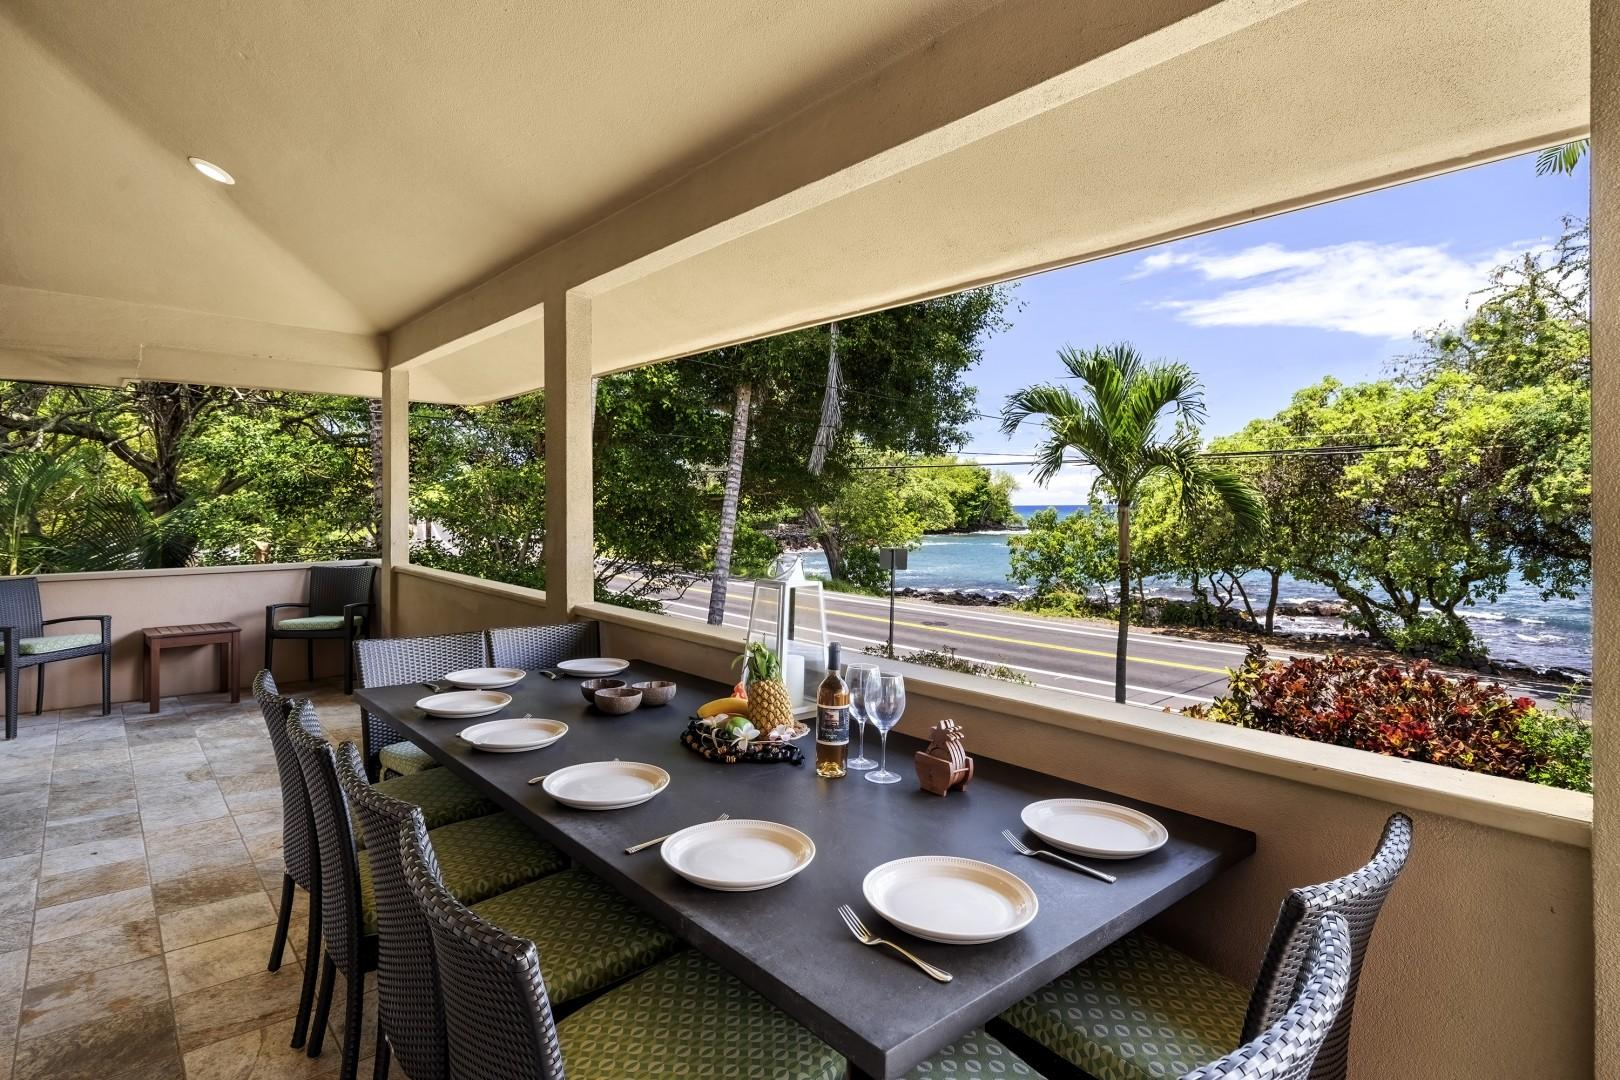 Outdoor dining for 8 with picturesque views!